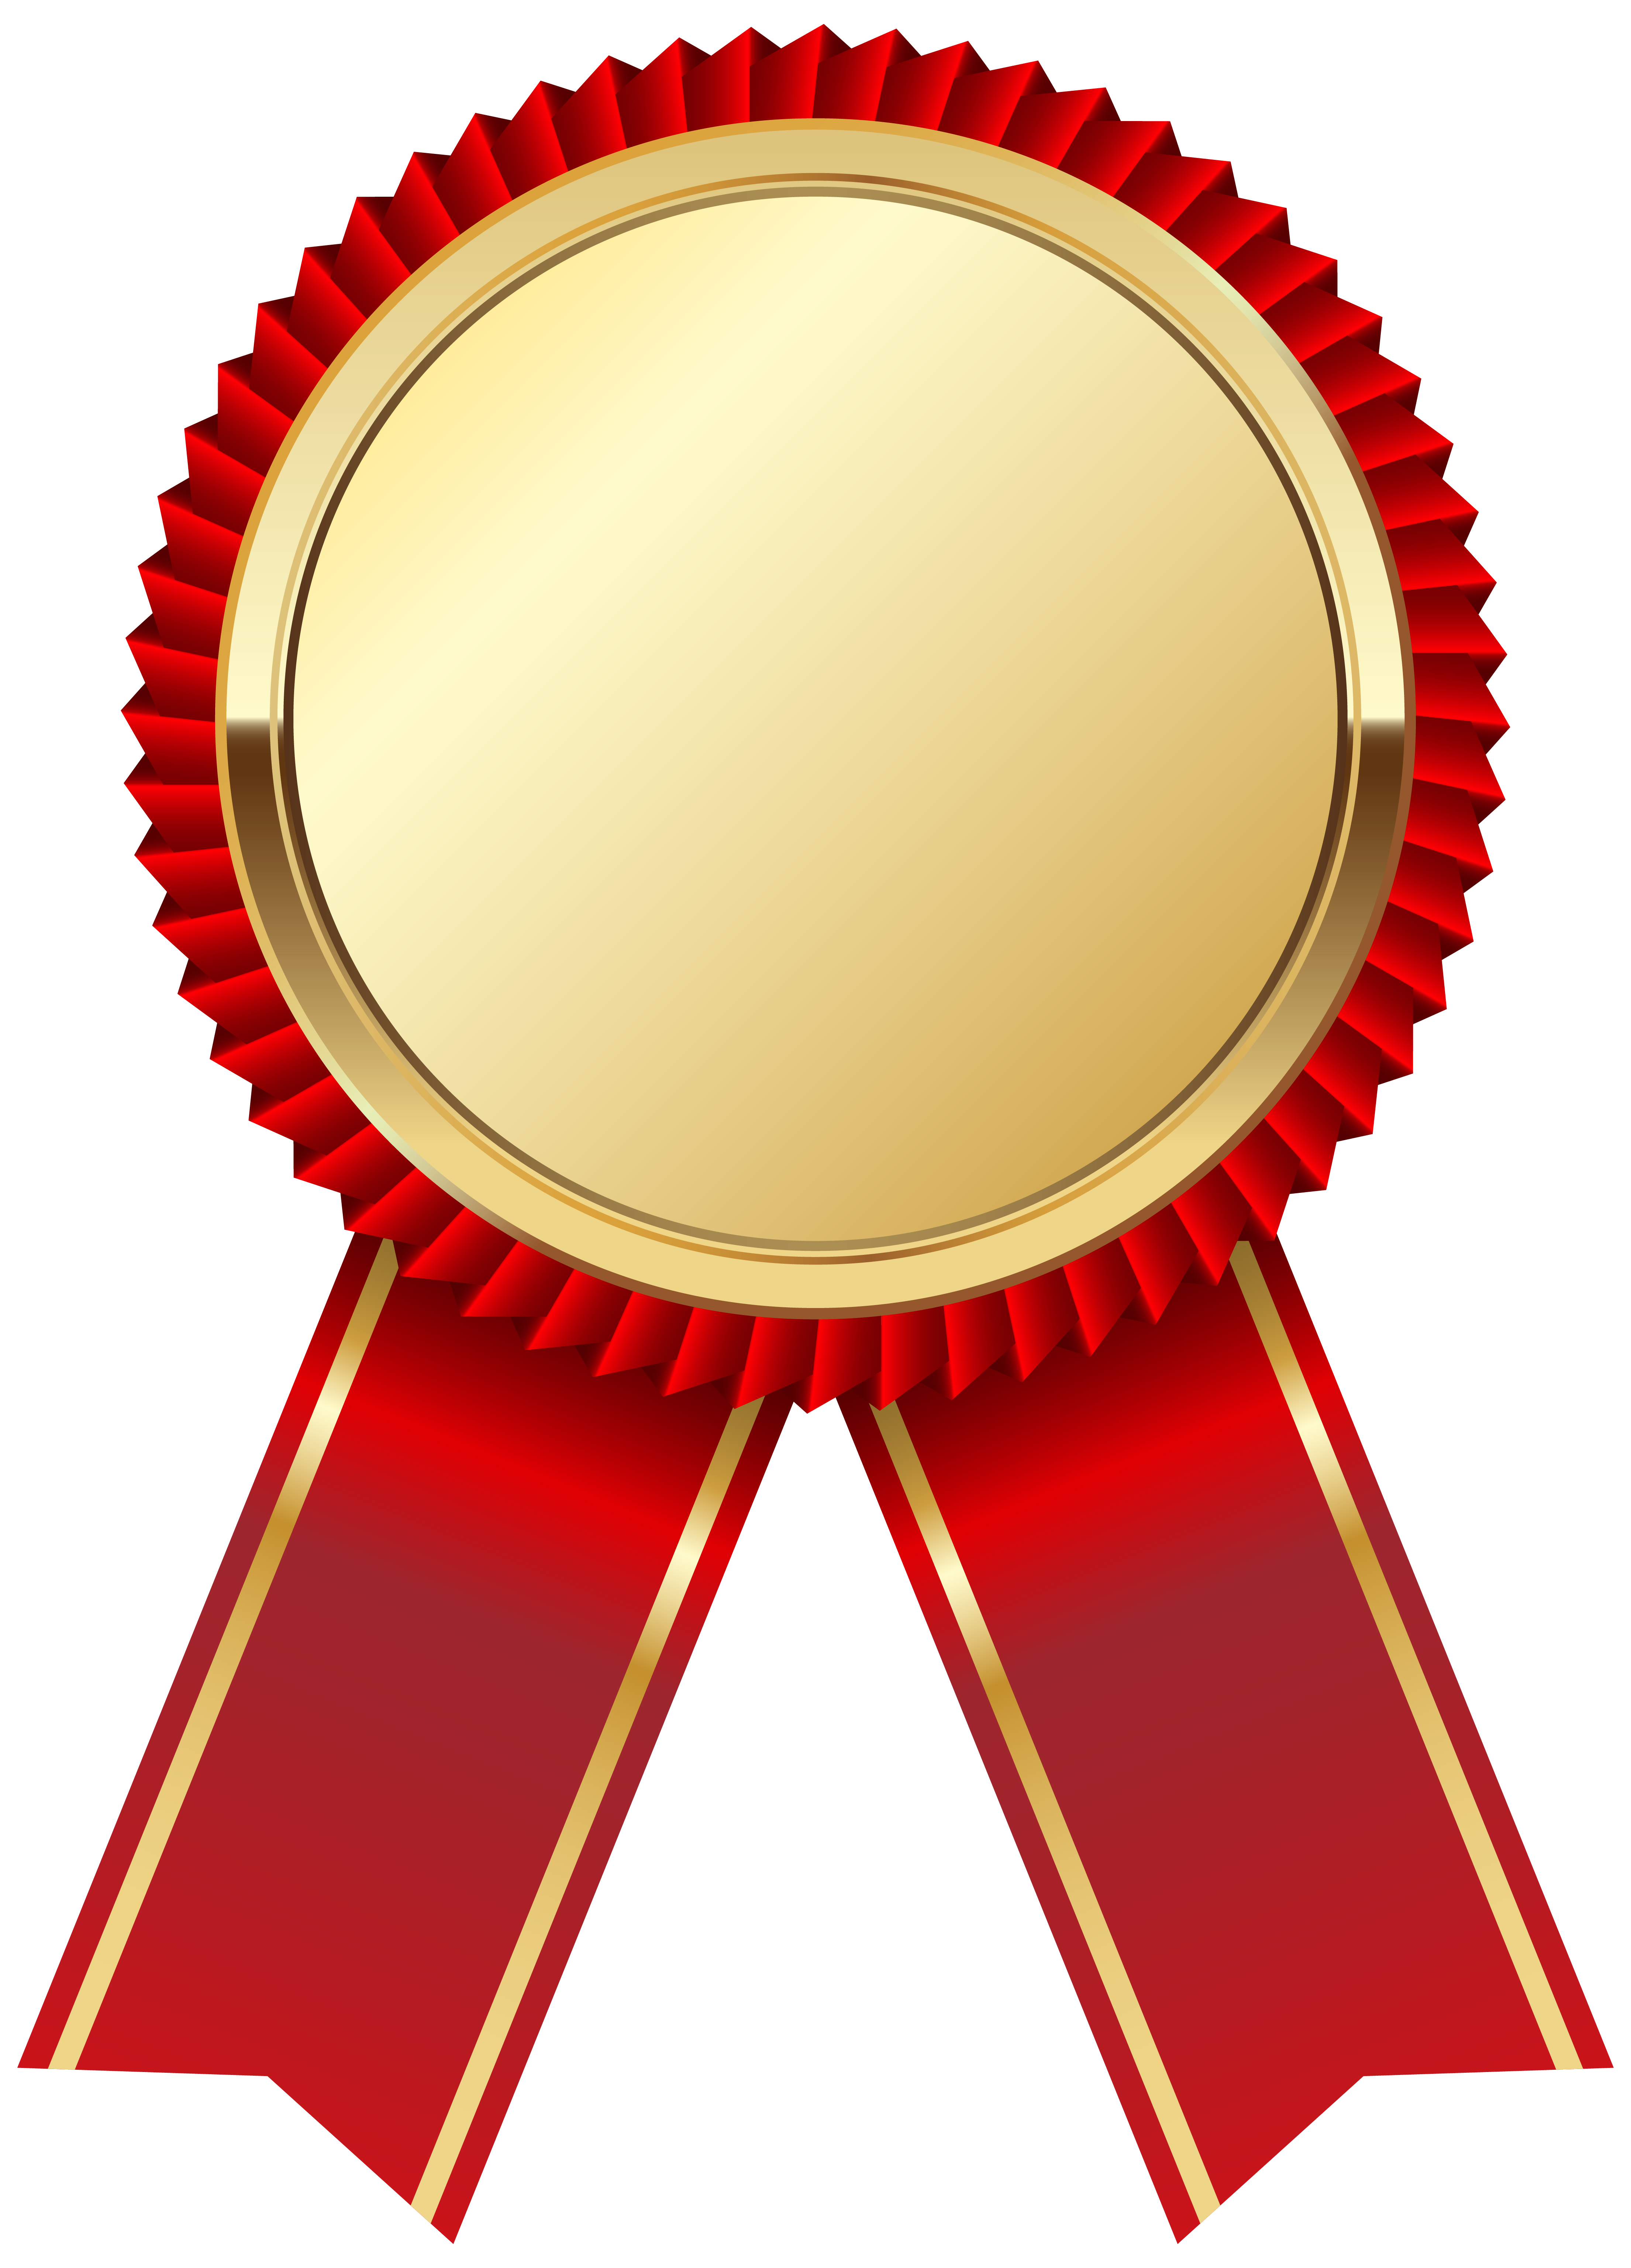 Trophy clipart red Clipart on Clip  Clipart